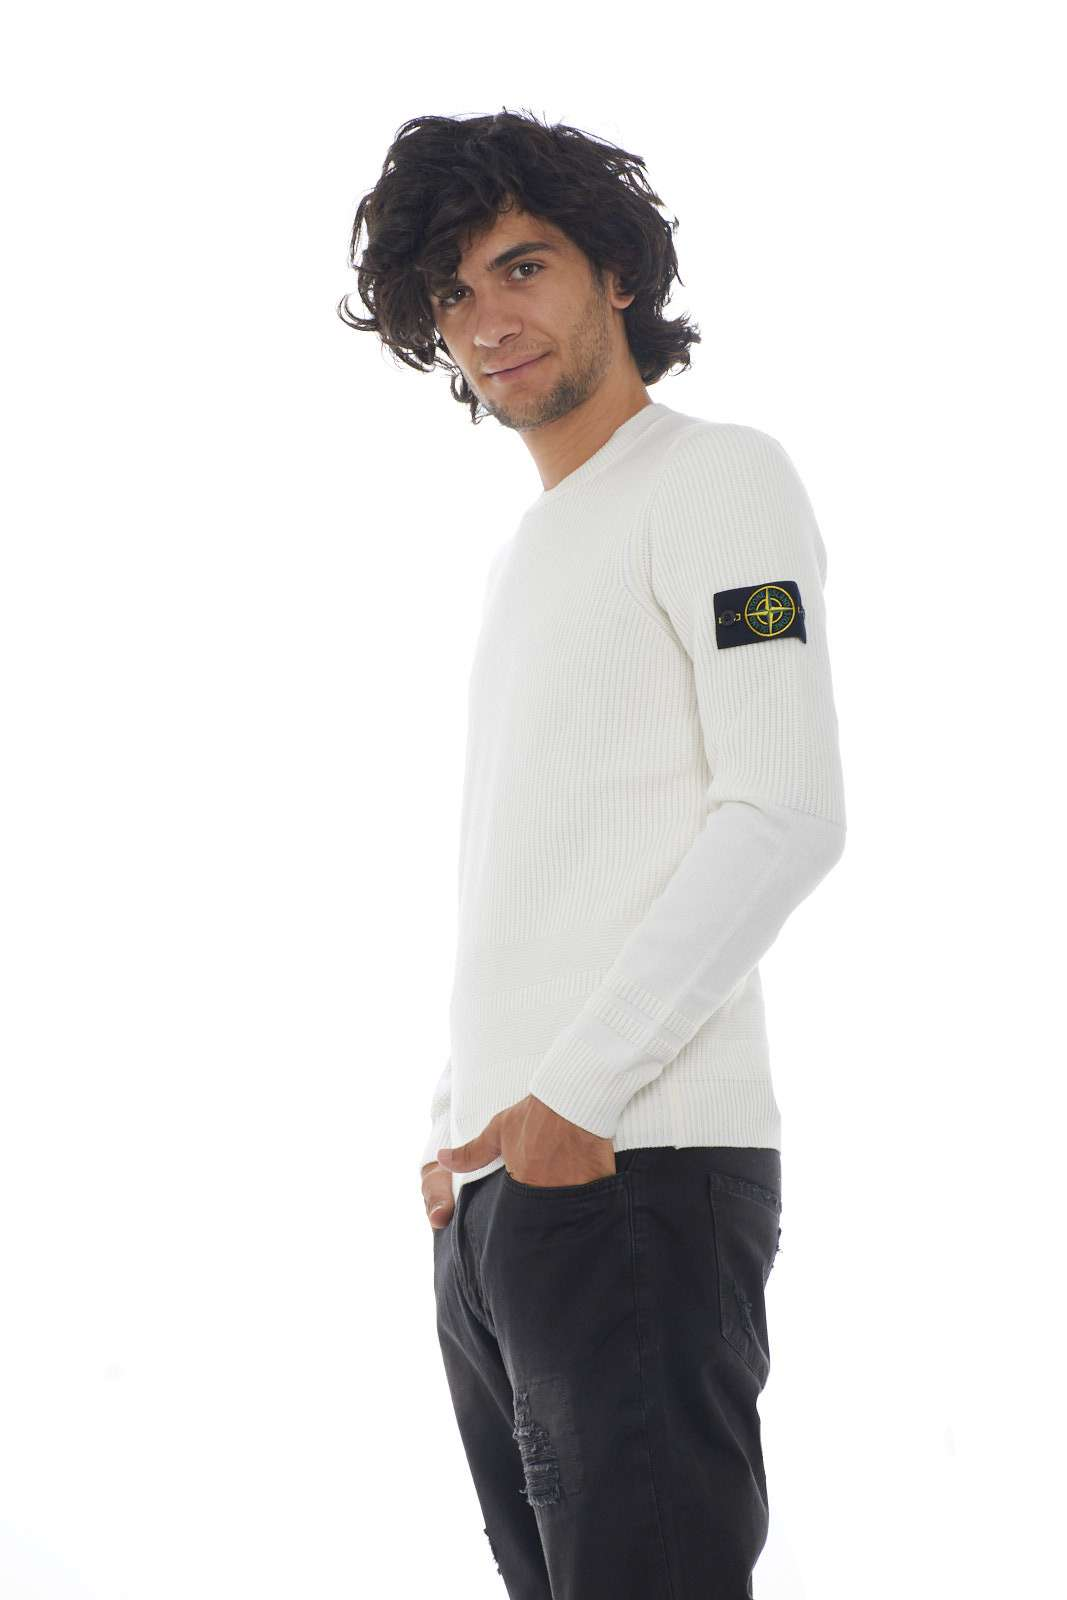 https://www.parmax.com/media/catalog/product/a/i/AI-outlet_parmax-maglia-uomo-Stone-Island-7115592A1-B.jpg